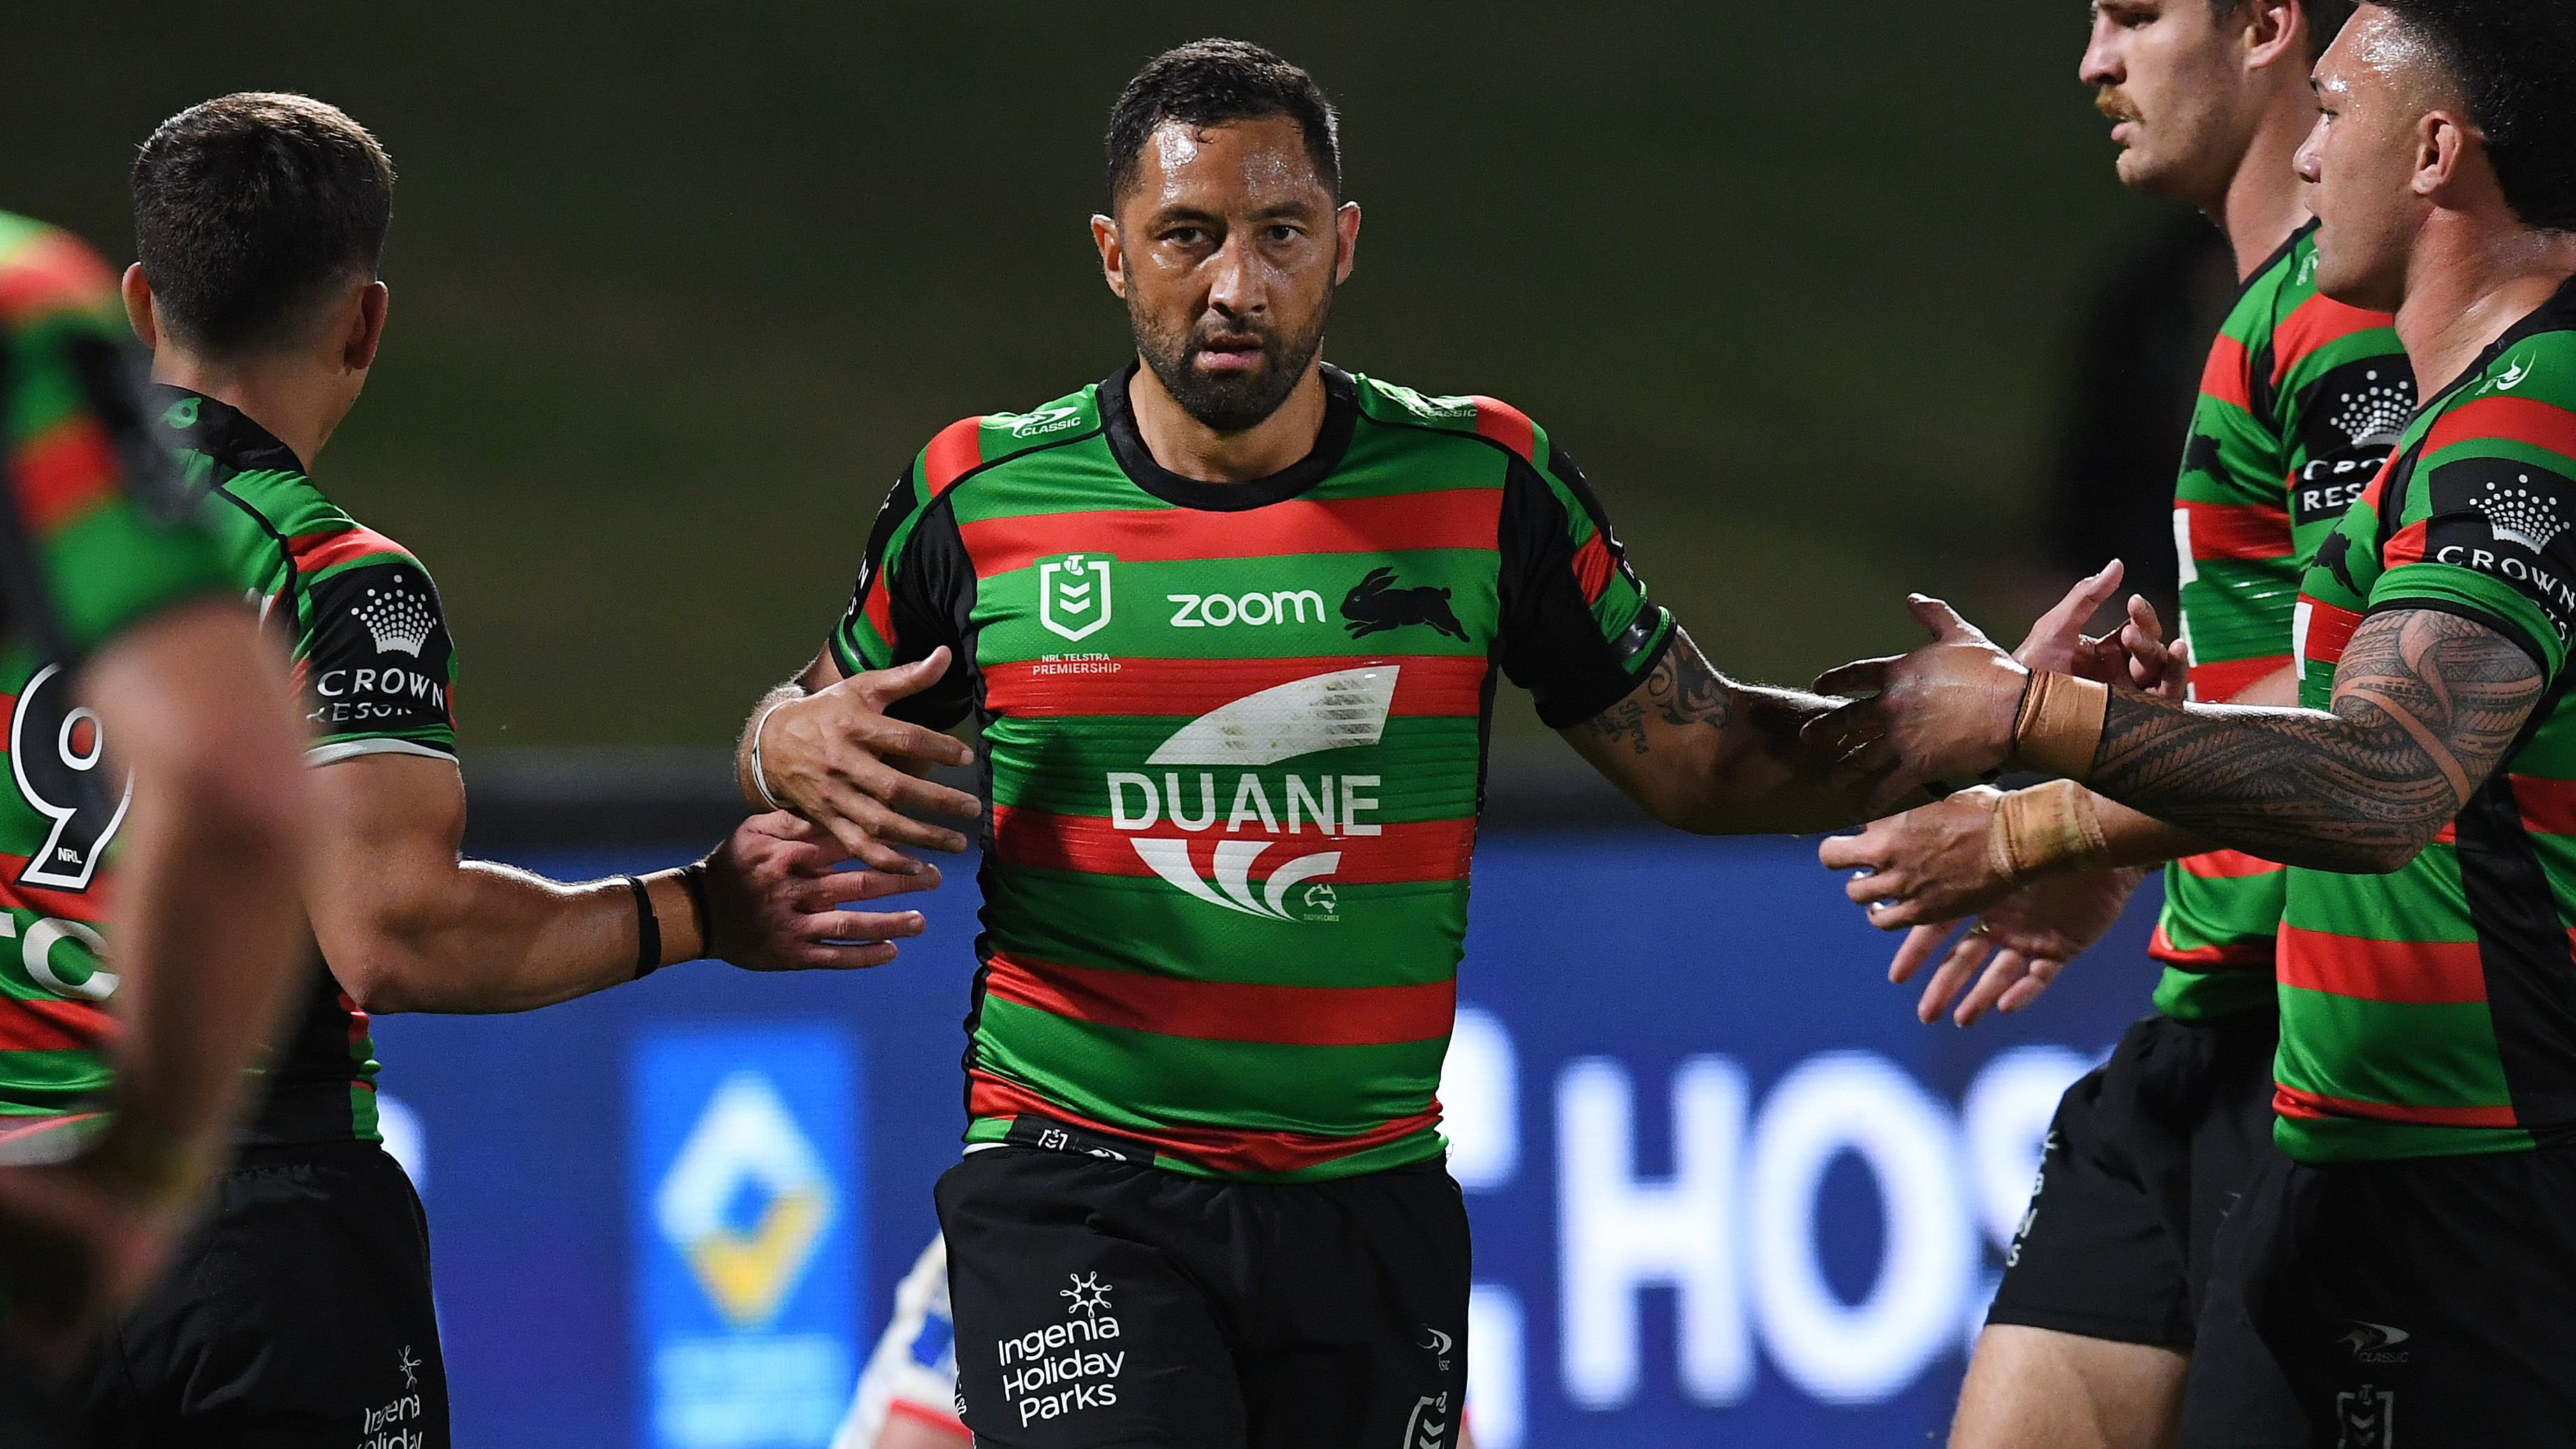 EXCLUSIVE: Sticking point that could earn Benji Marshall a new deal, but Gould says he should retire